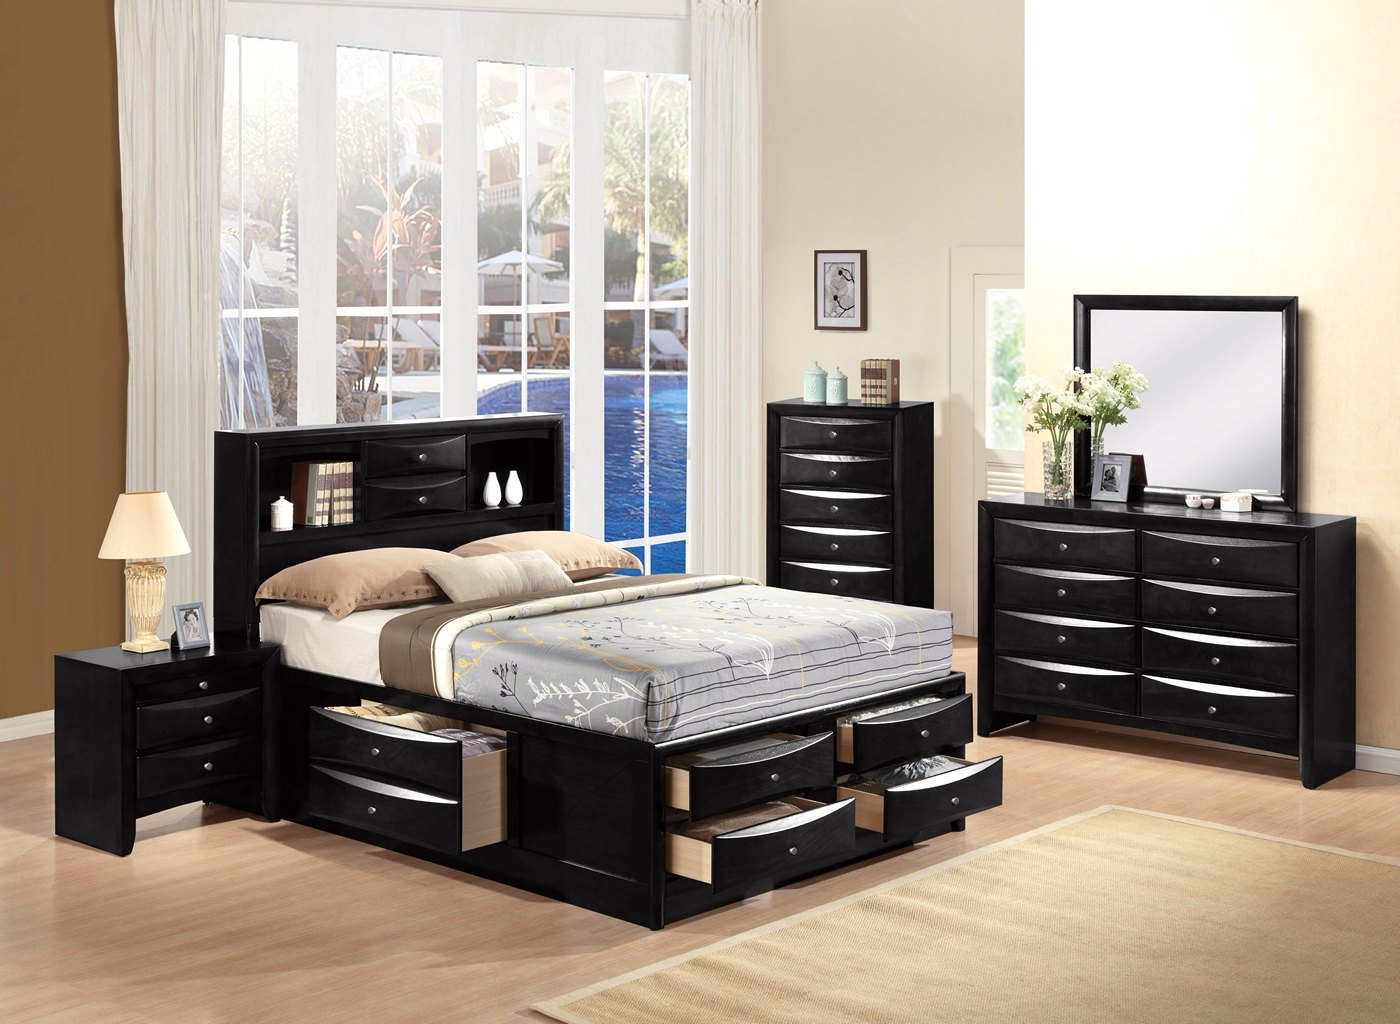 Limerick transitional 6 drawer storage queen platform bed for Bedroom furniture limerick